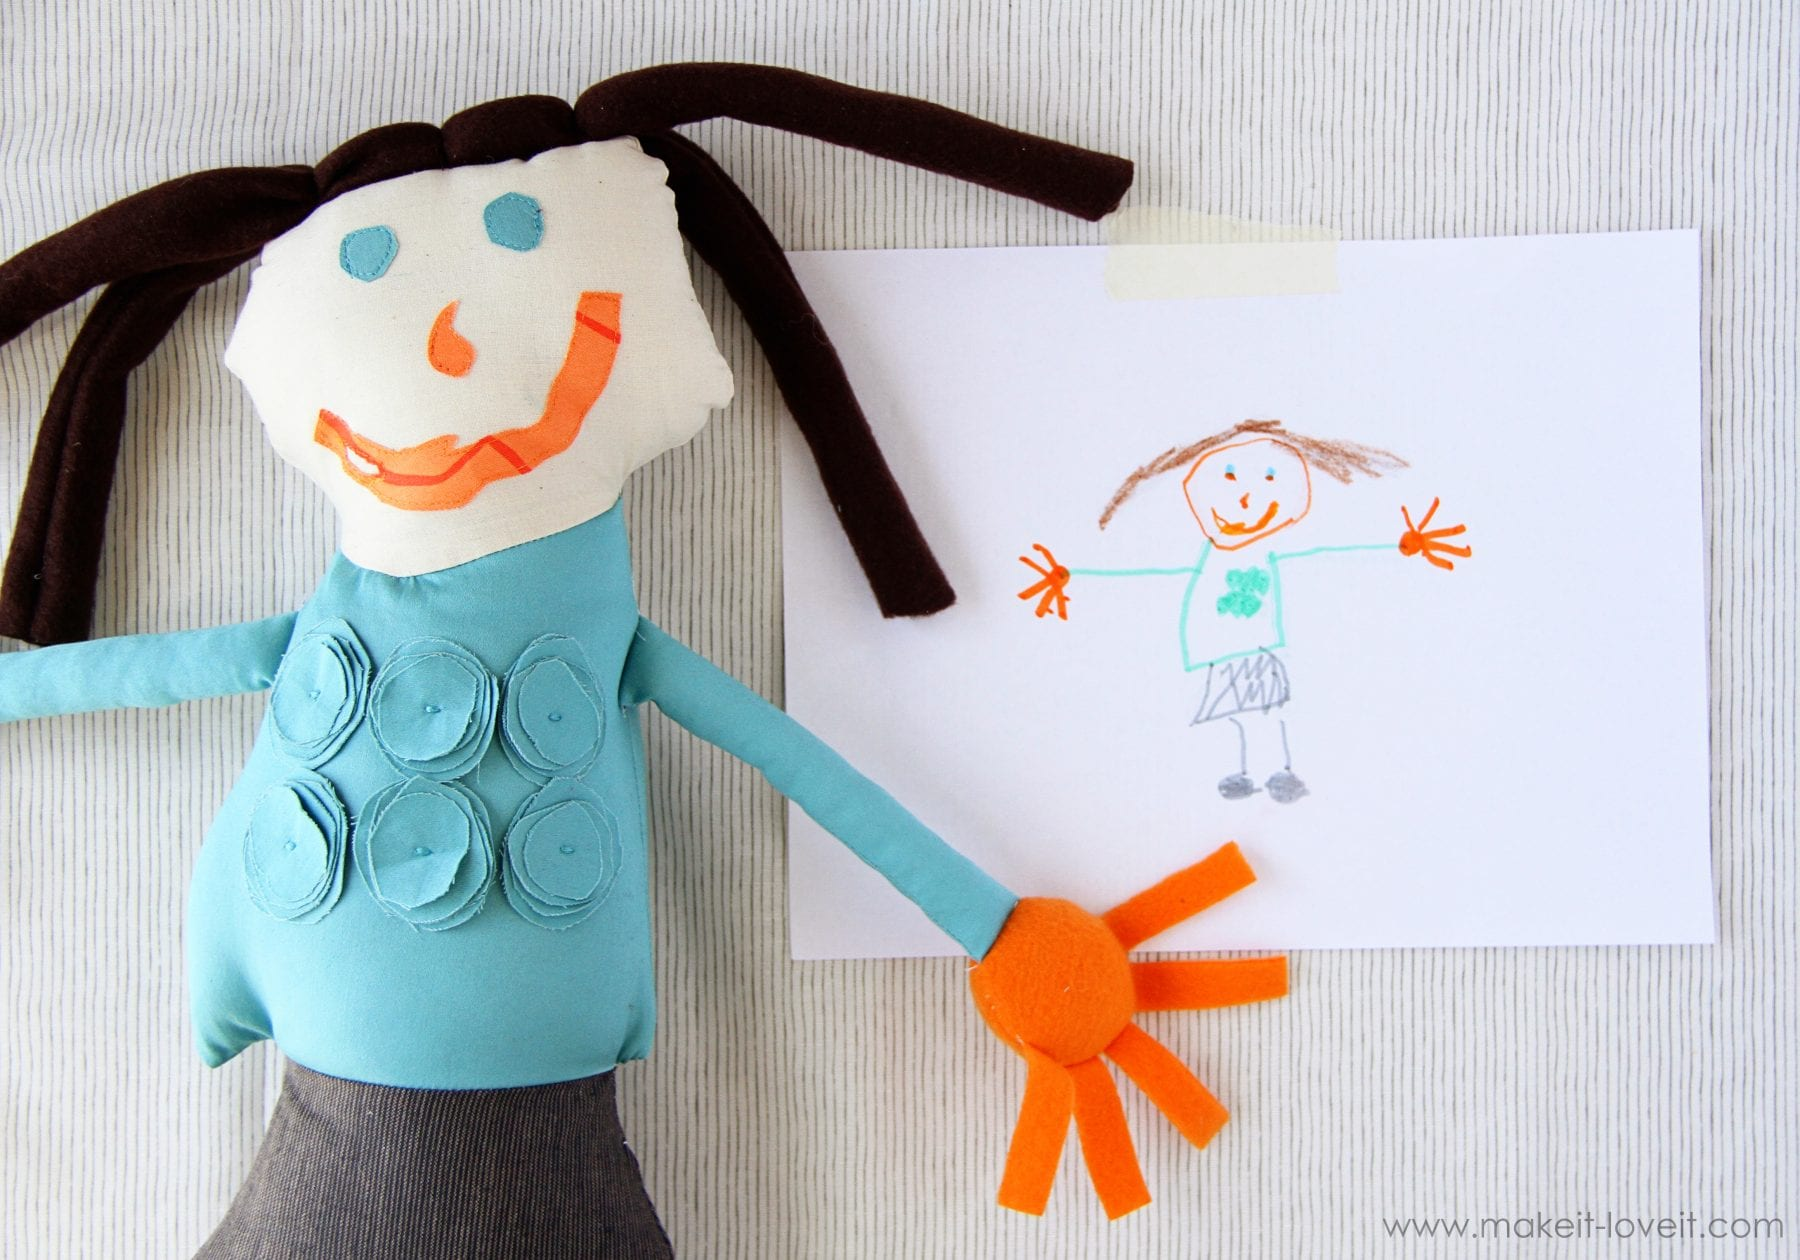 Turn Child's Drawing into Stuffed Toy/Doll